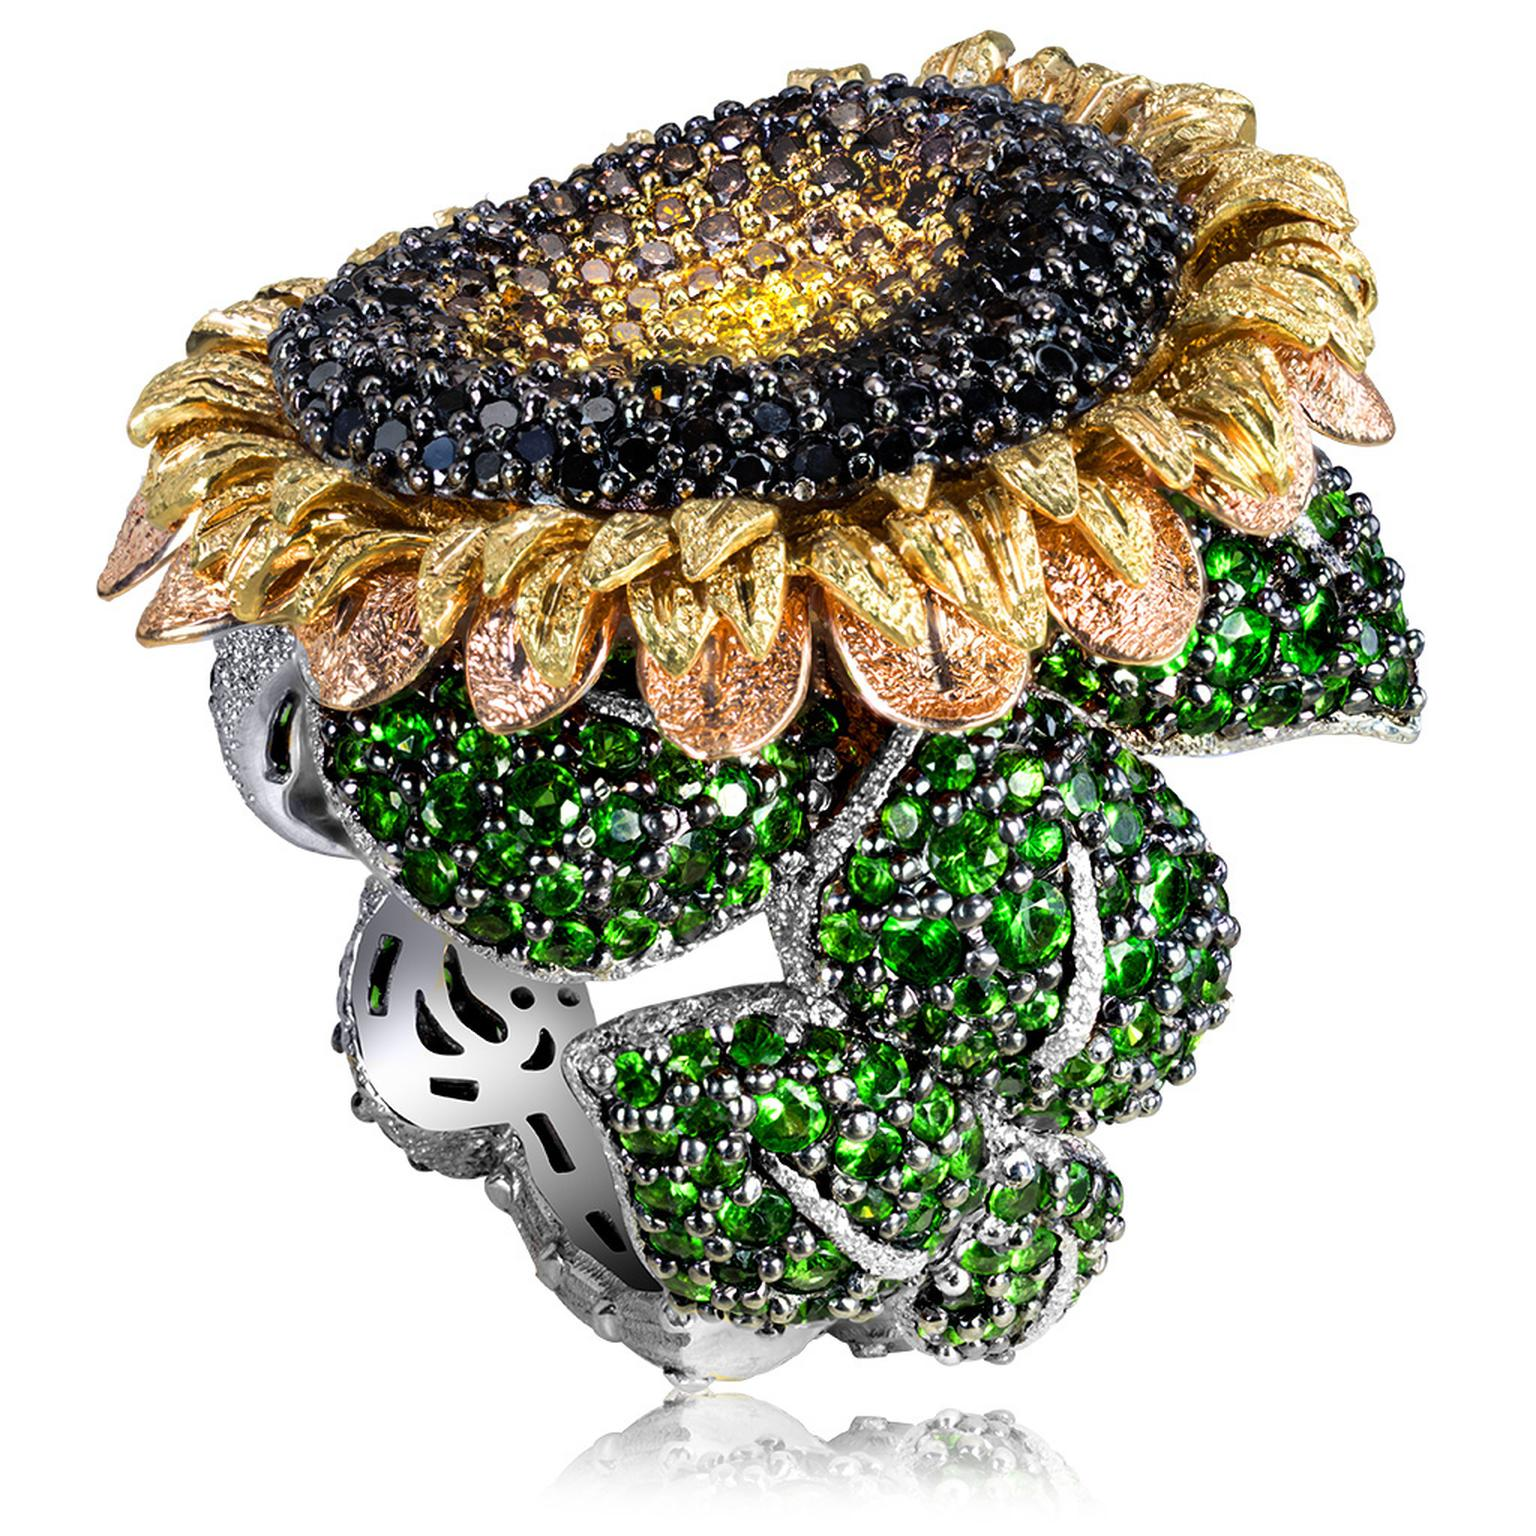 Gold Sunflower Ring from Alex Soldier